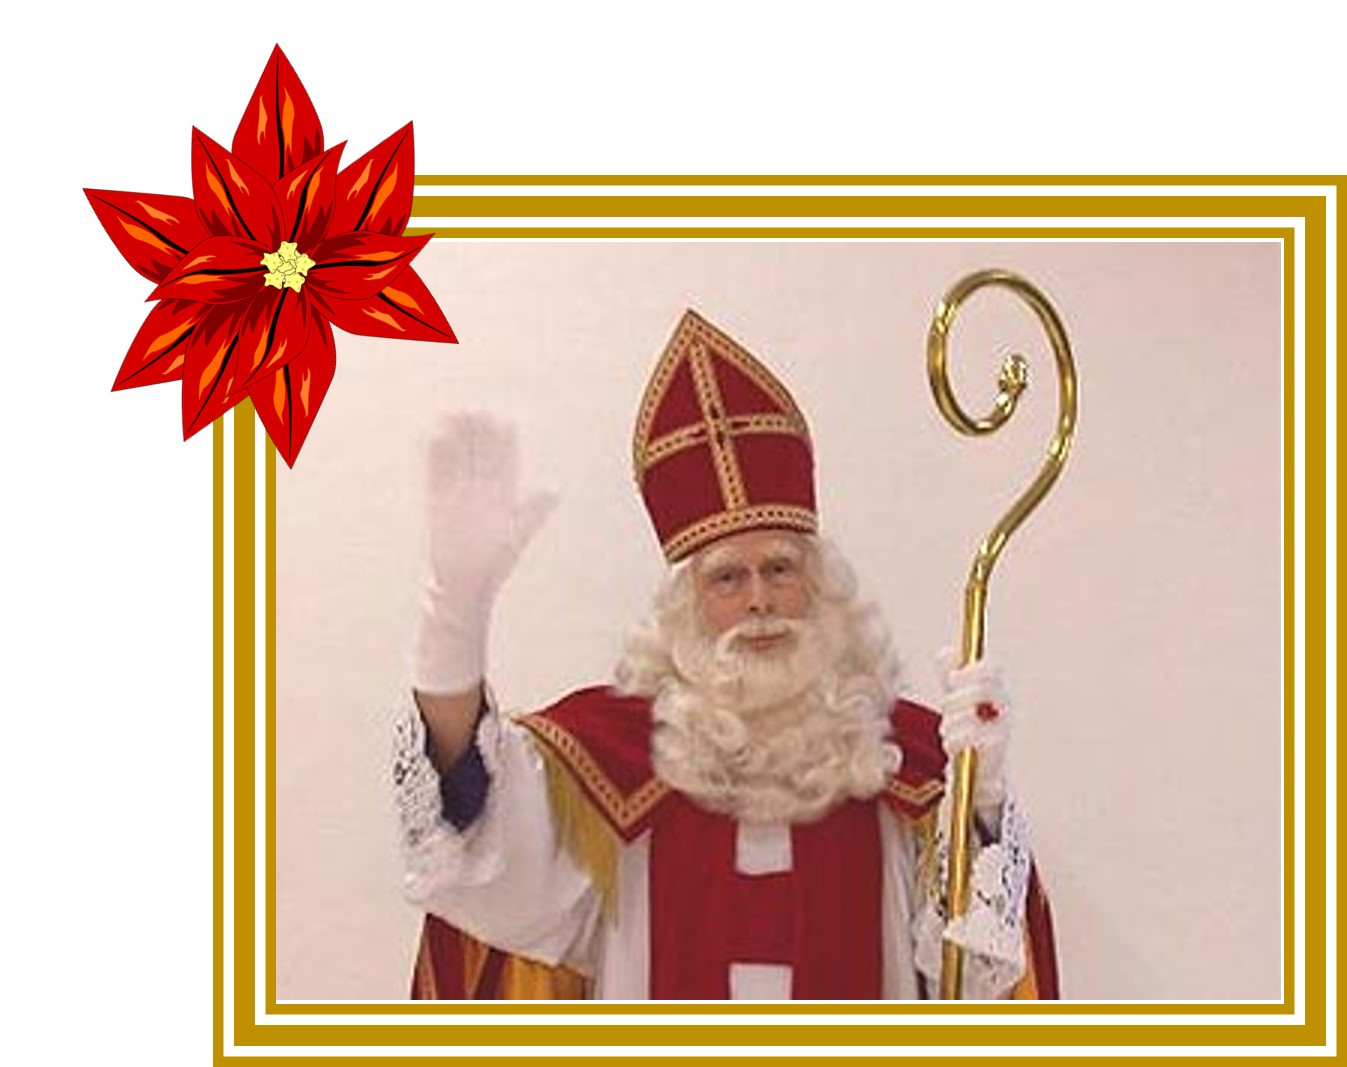 Christmas in the Netherlands features Sinterklaas, who holds a cane and wears a tall hat. | OrnamentShop.com